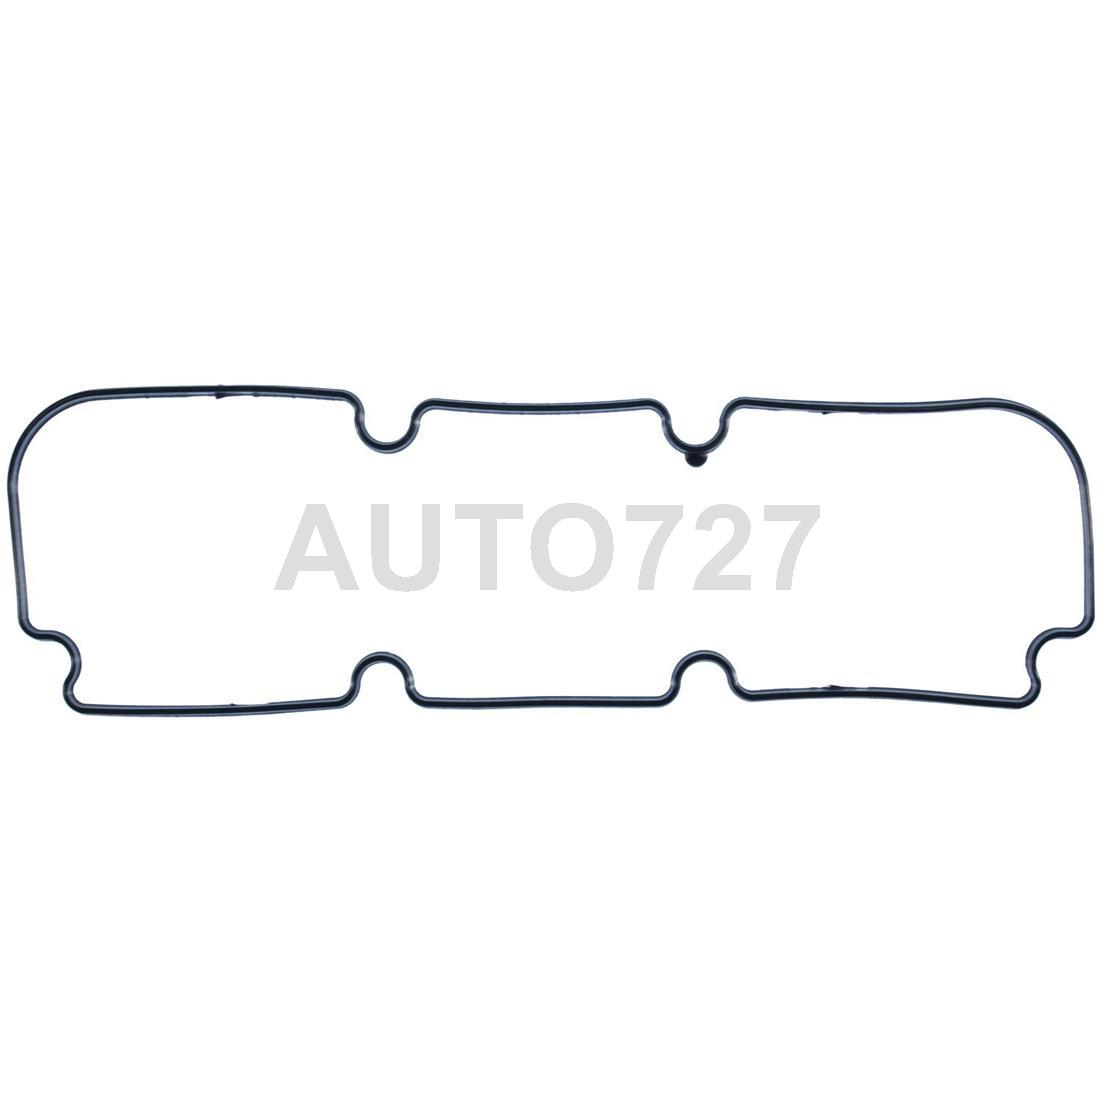 Mahle 2pcs Engine Valve Cover Gasket For Buick Allure